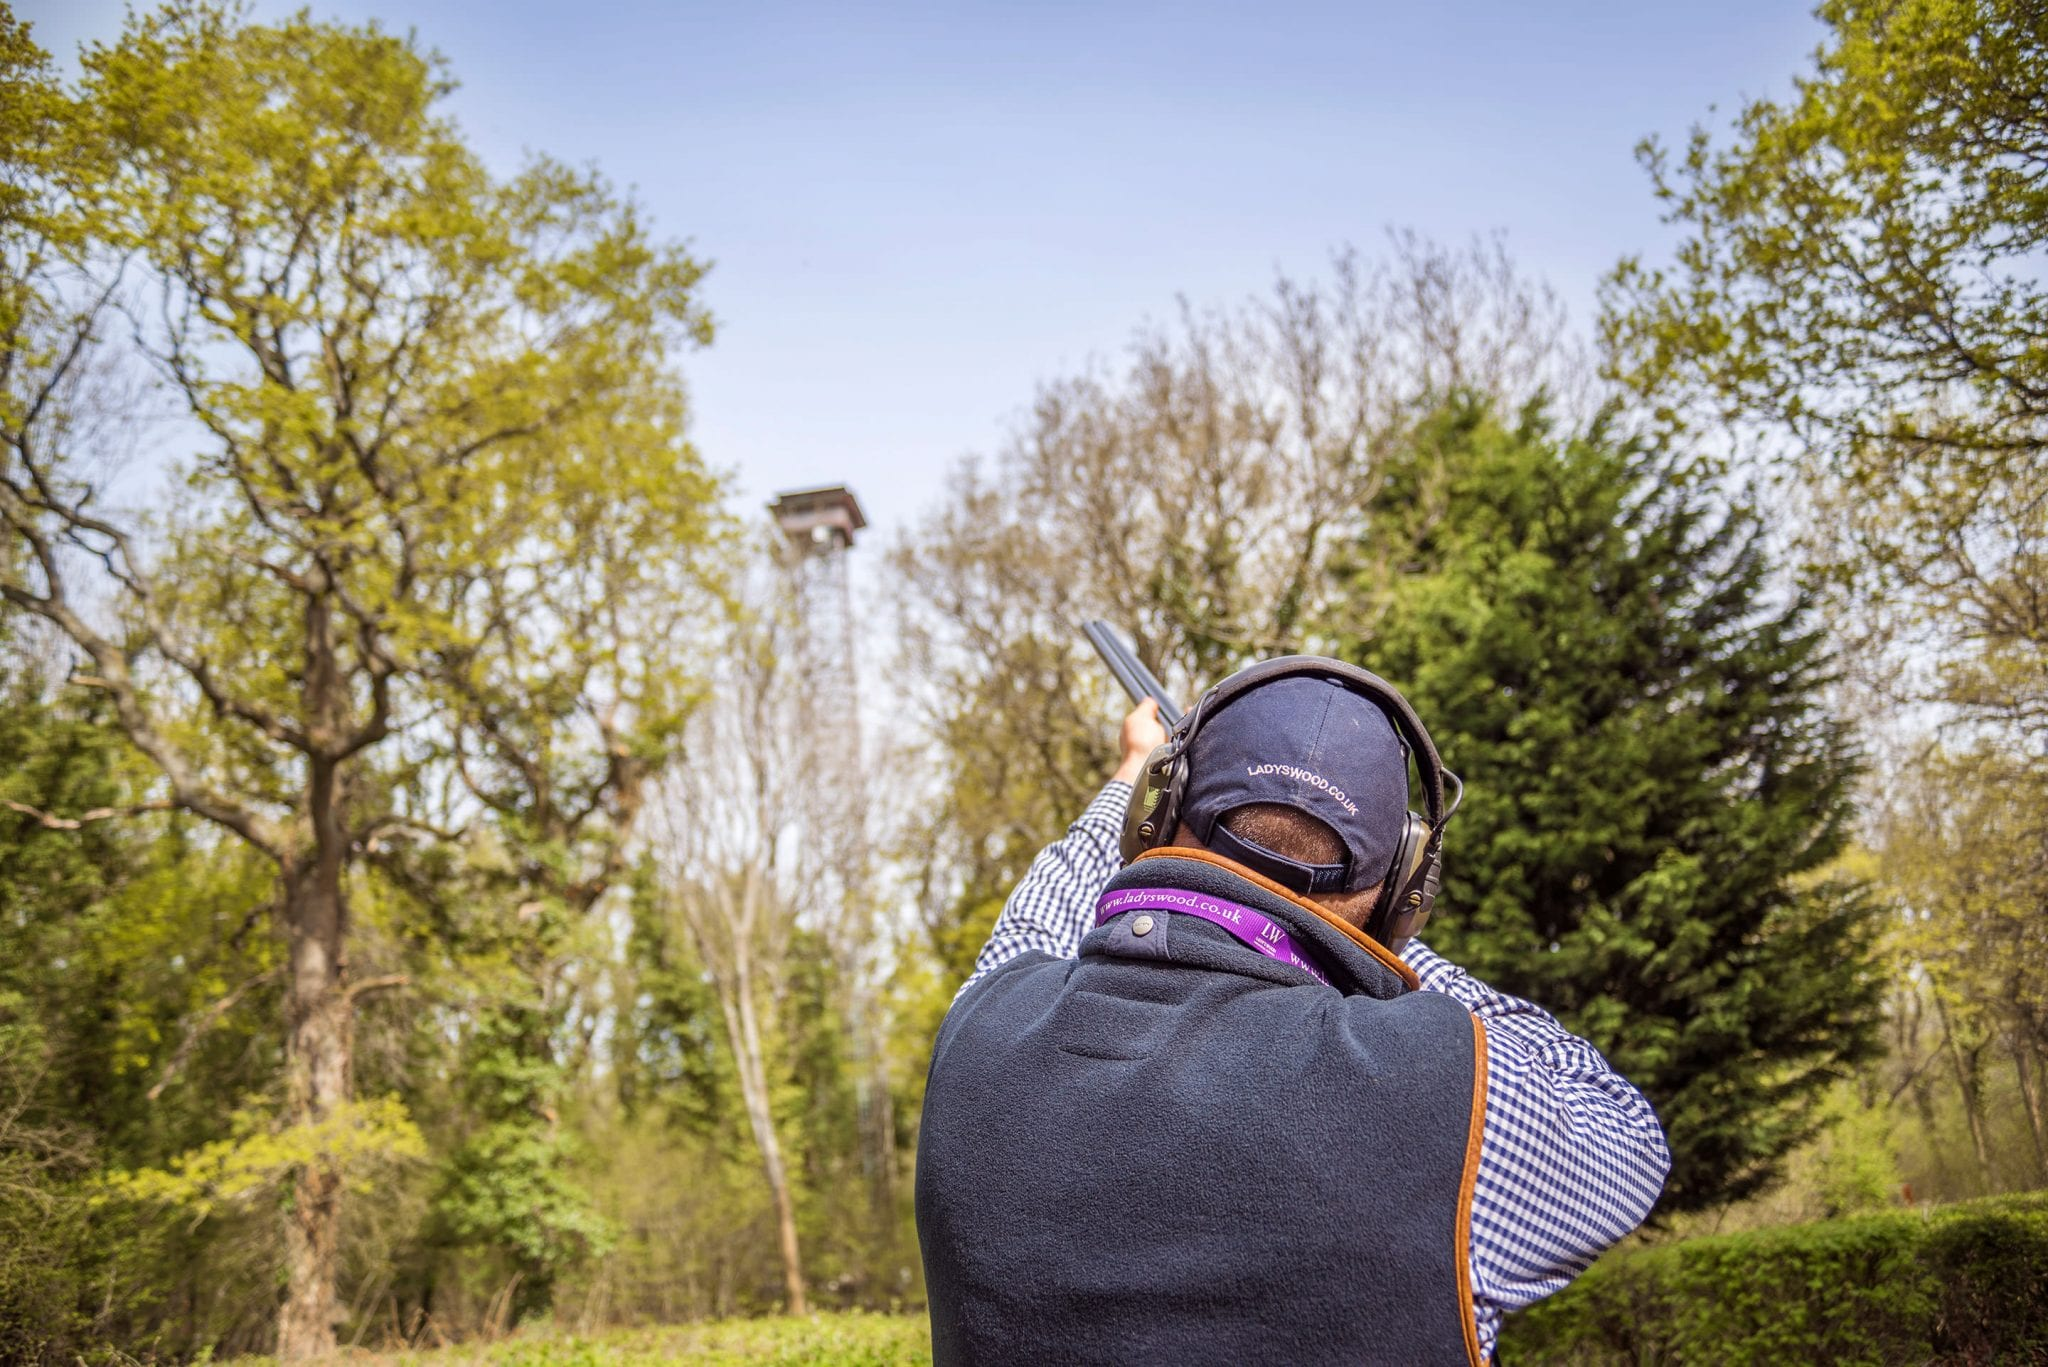 Clay shooting instruction in front of the tower at Lady's Wood Shooting School